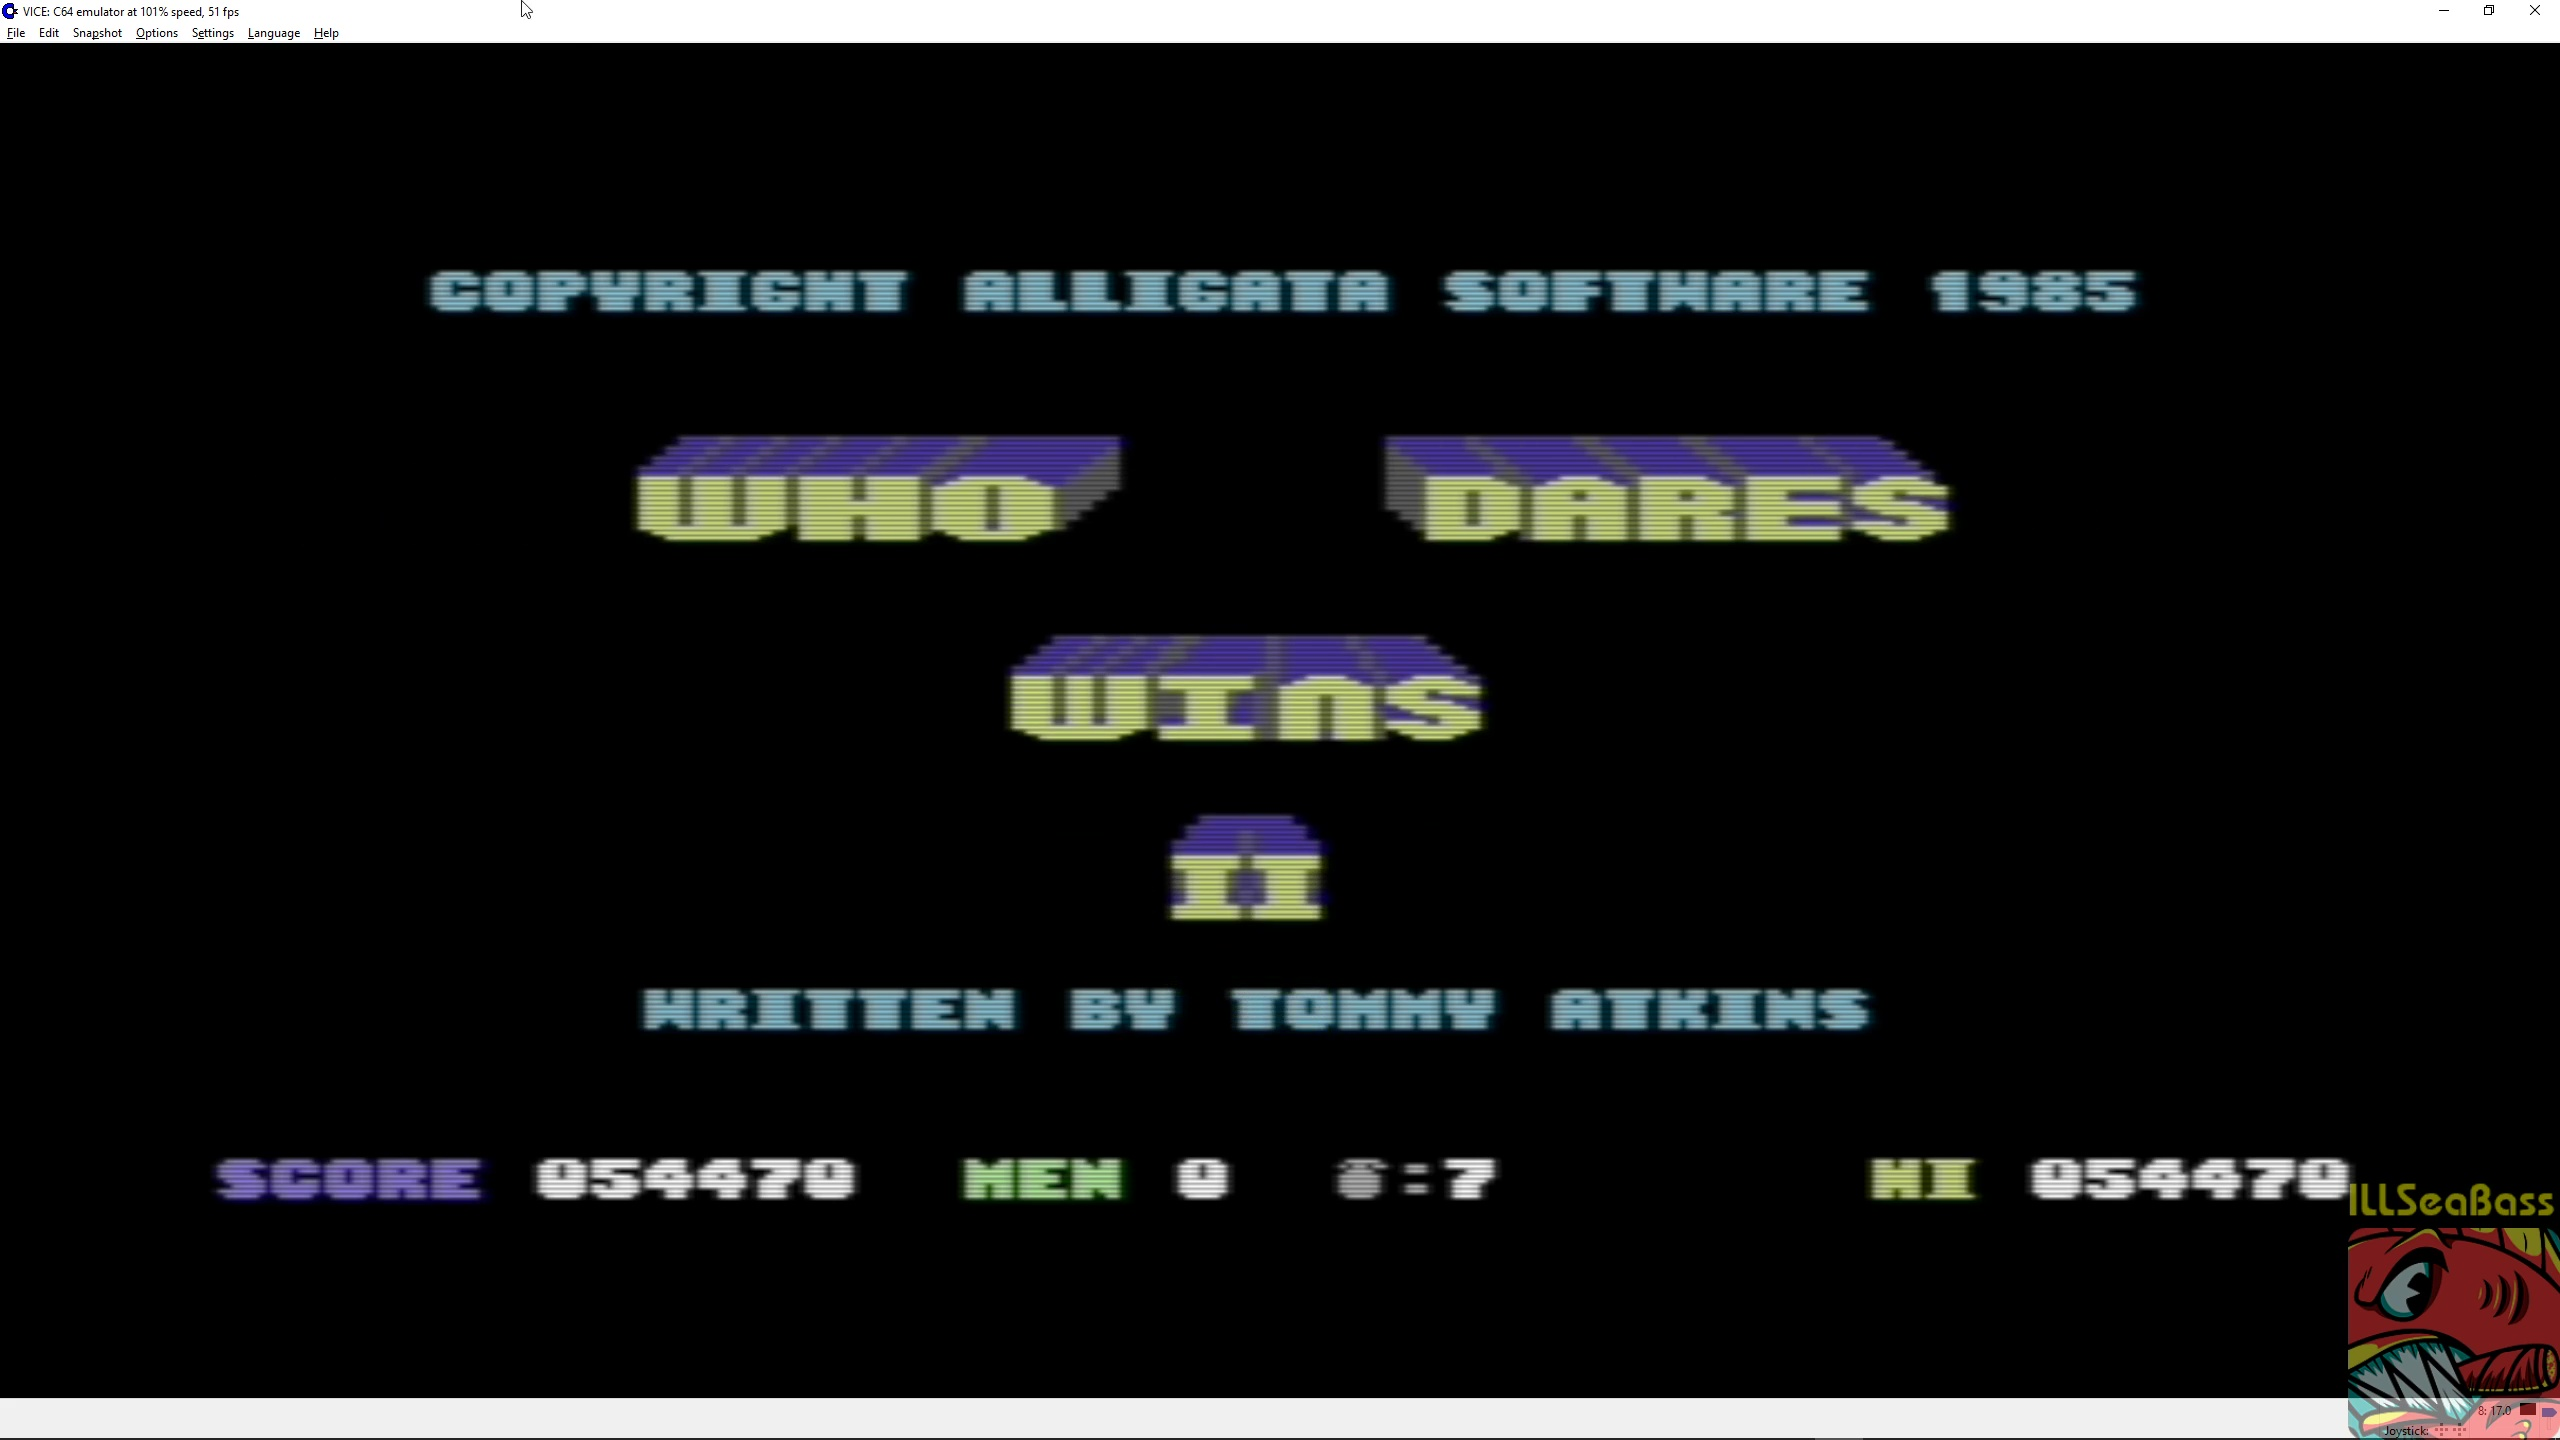 ILLSeaBass: Who Dares Wins II [Alligata] (Commodore 64 Emulated) 54,470 points on 2018-04-06 23:19:44